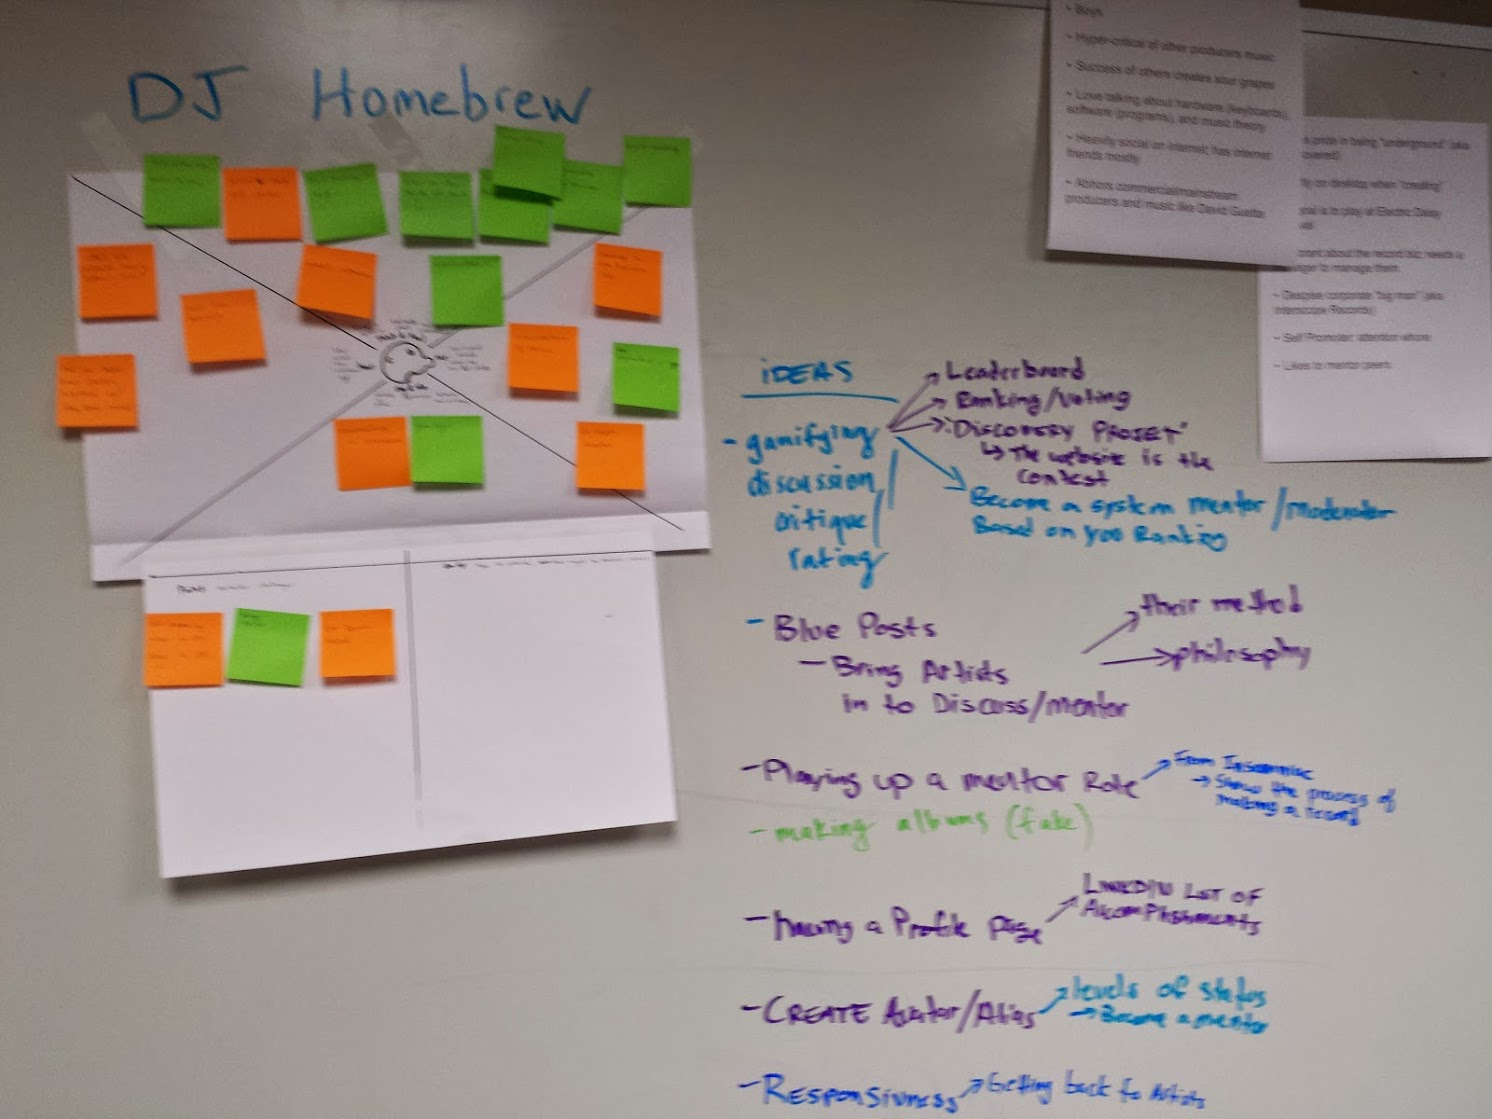 An empathy map for organizing known behaviors and hypothesizing more behaviors; includes generation of features from behavior